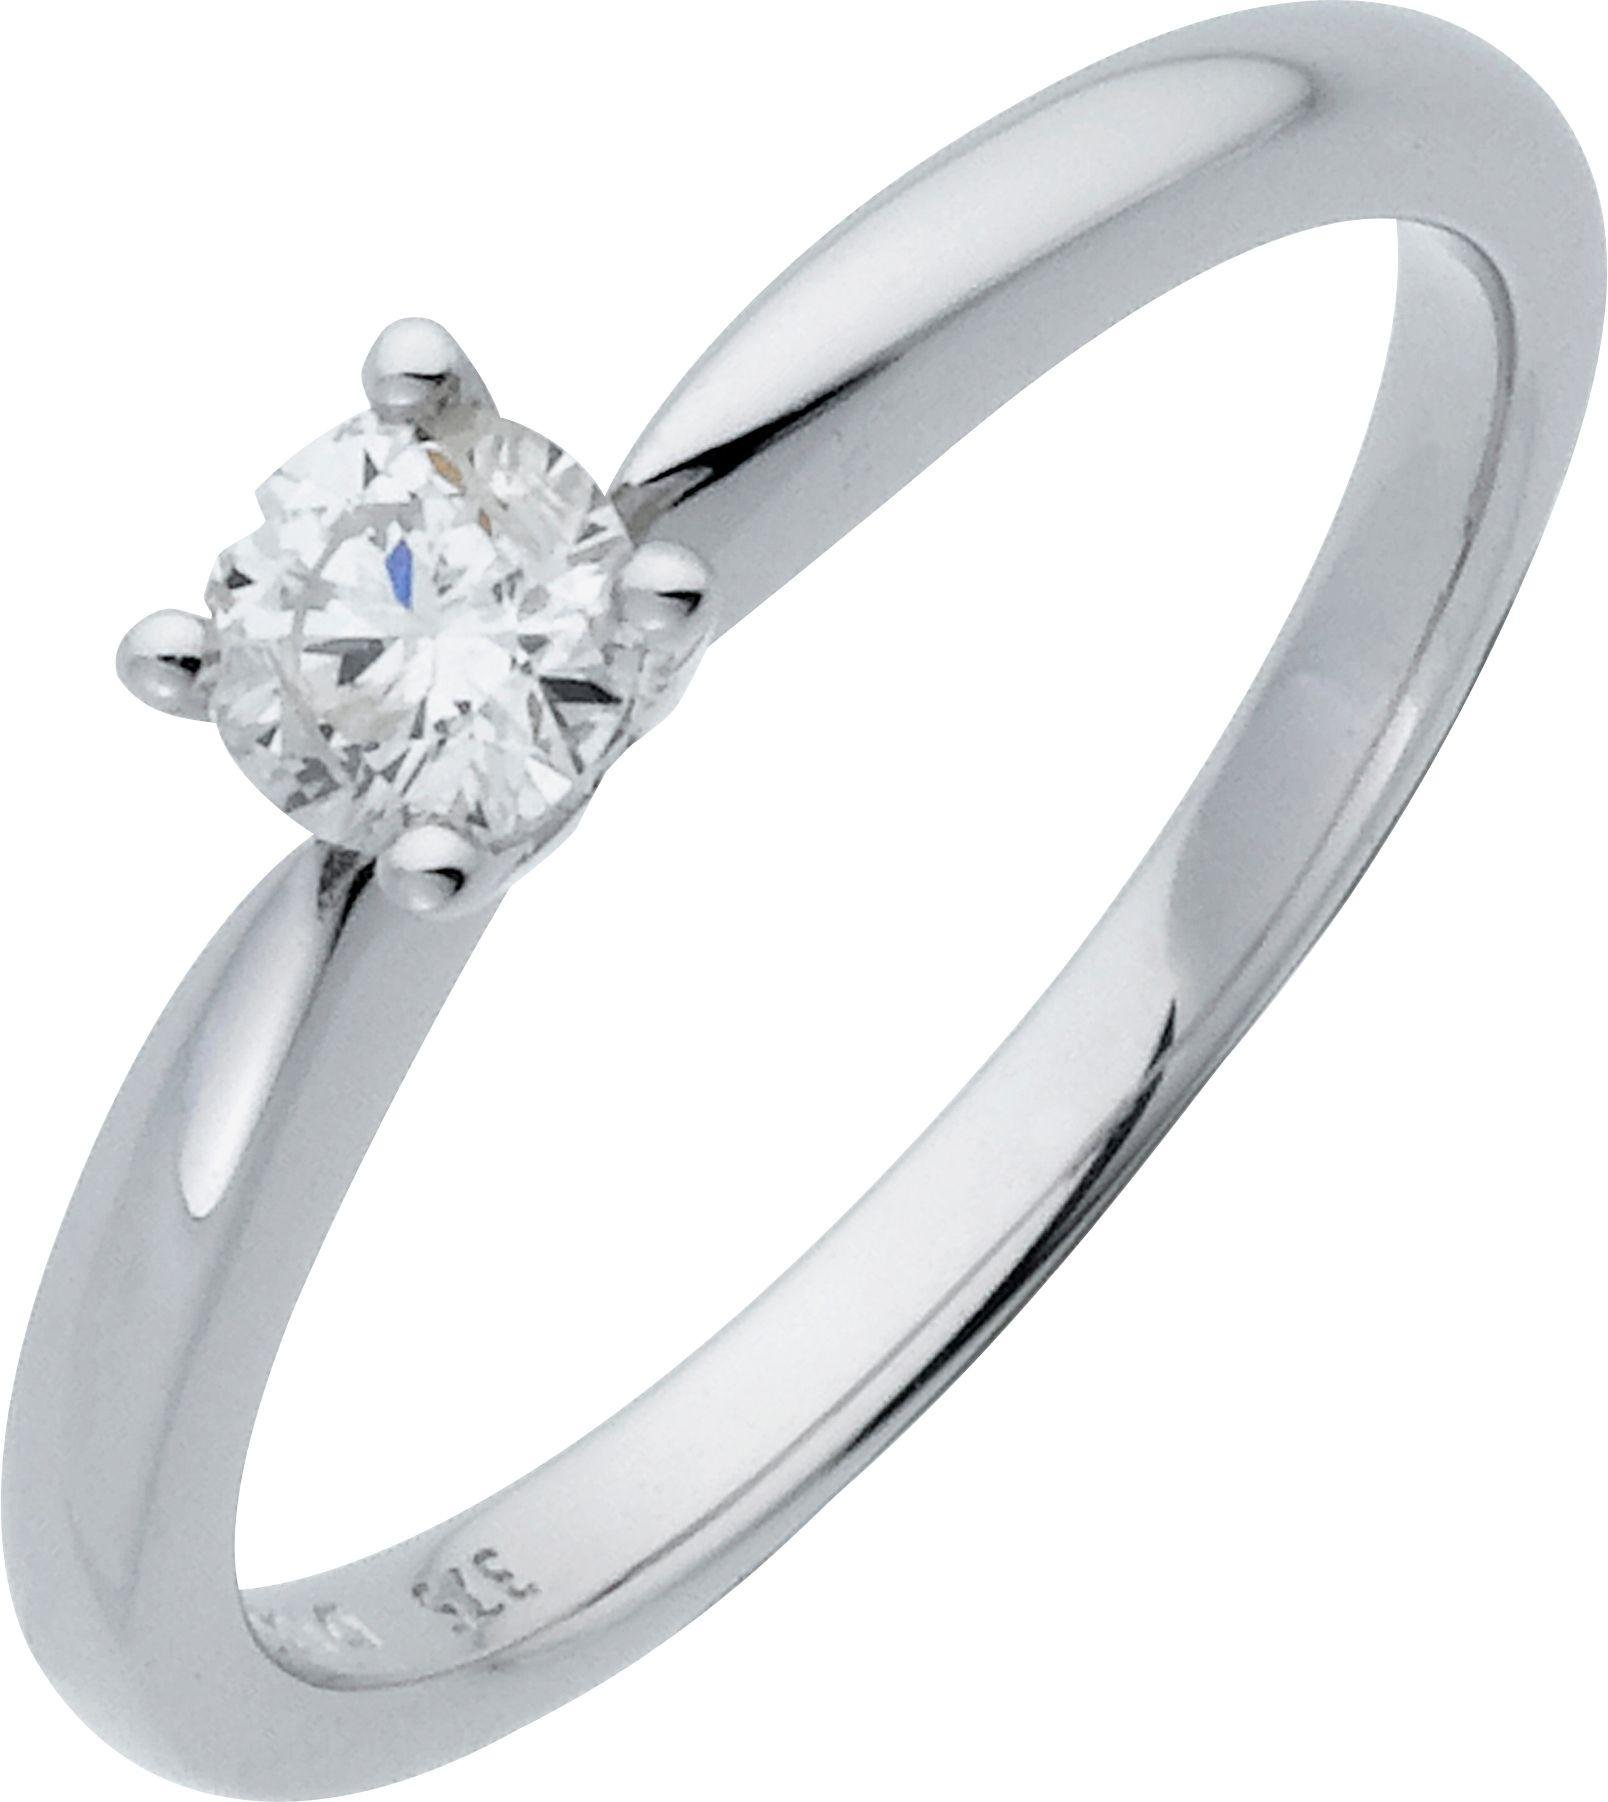 Made For You - 18 Carat White Gold 025 Carat Solitaire Ring - Size T